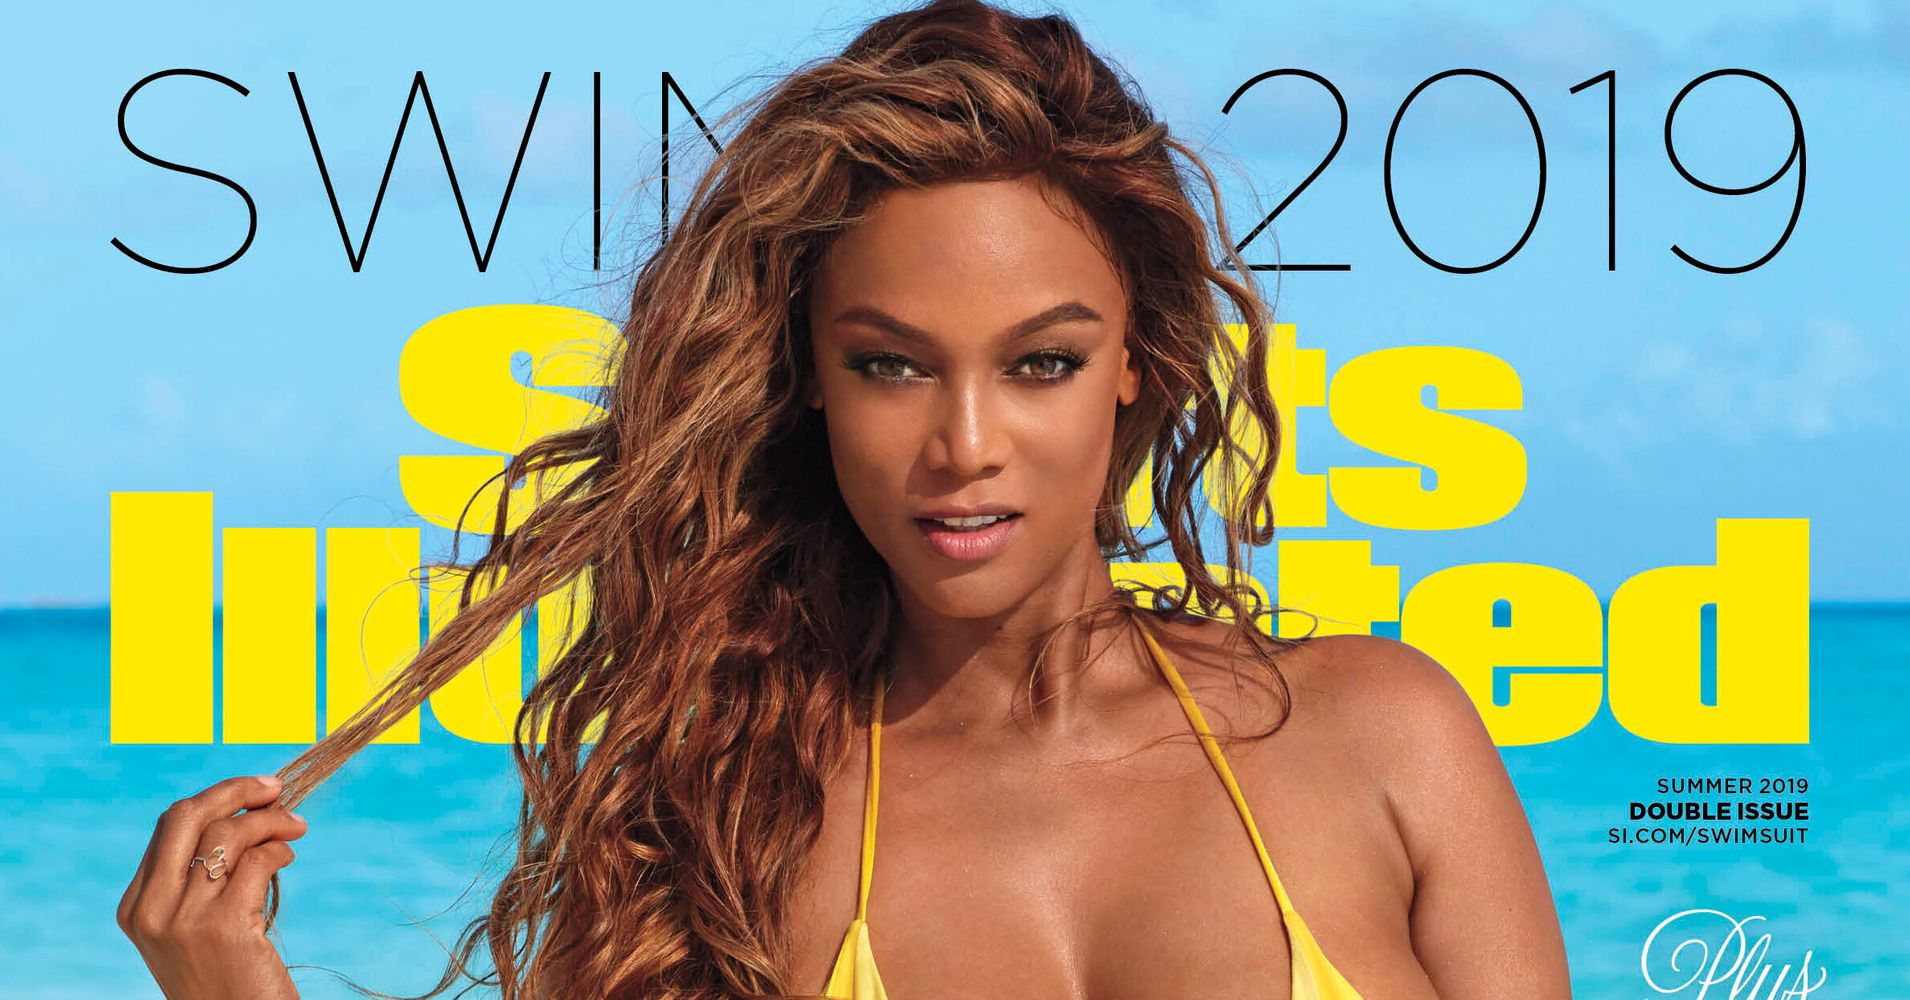 f90a55fd0d383 Tyra Banks Returns For Her 3rd Cover Of Sports Illustrated Swimsuit    HuffPost Life